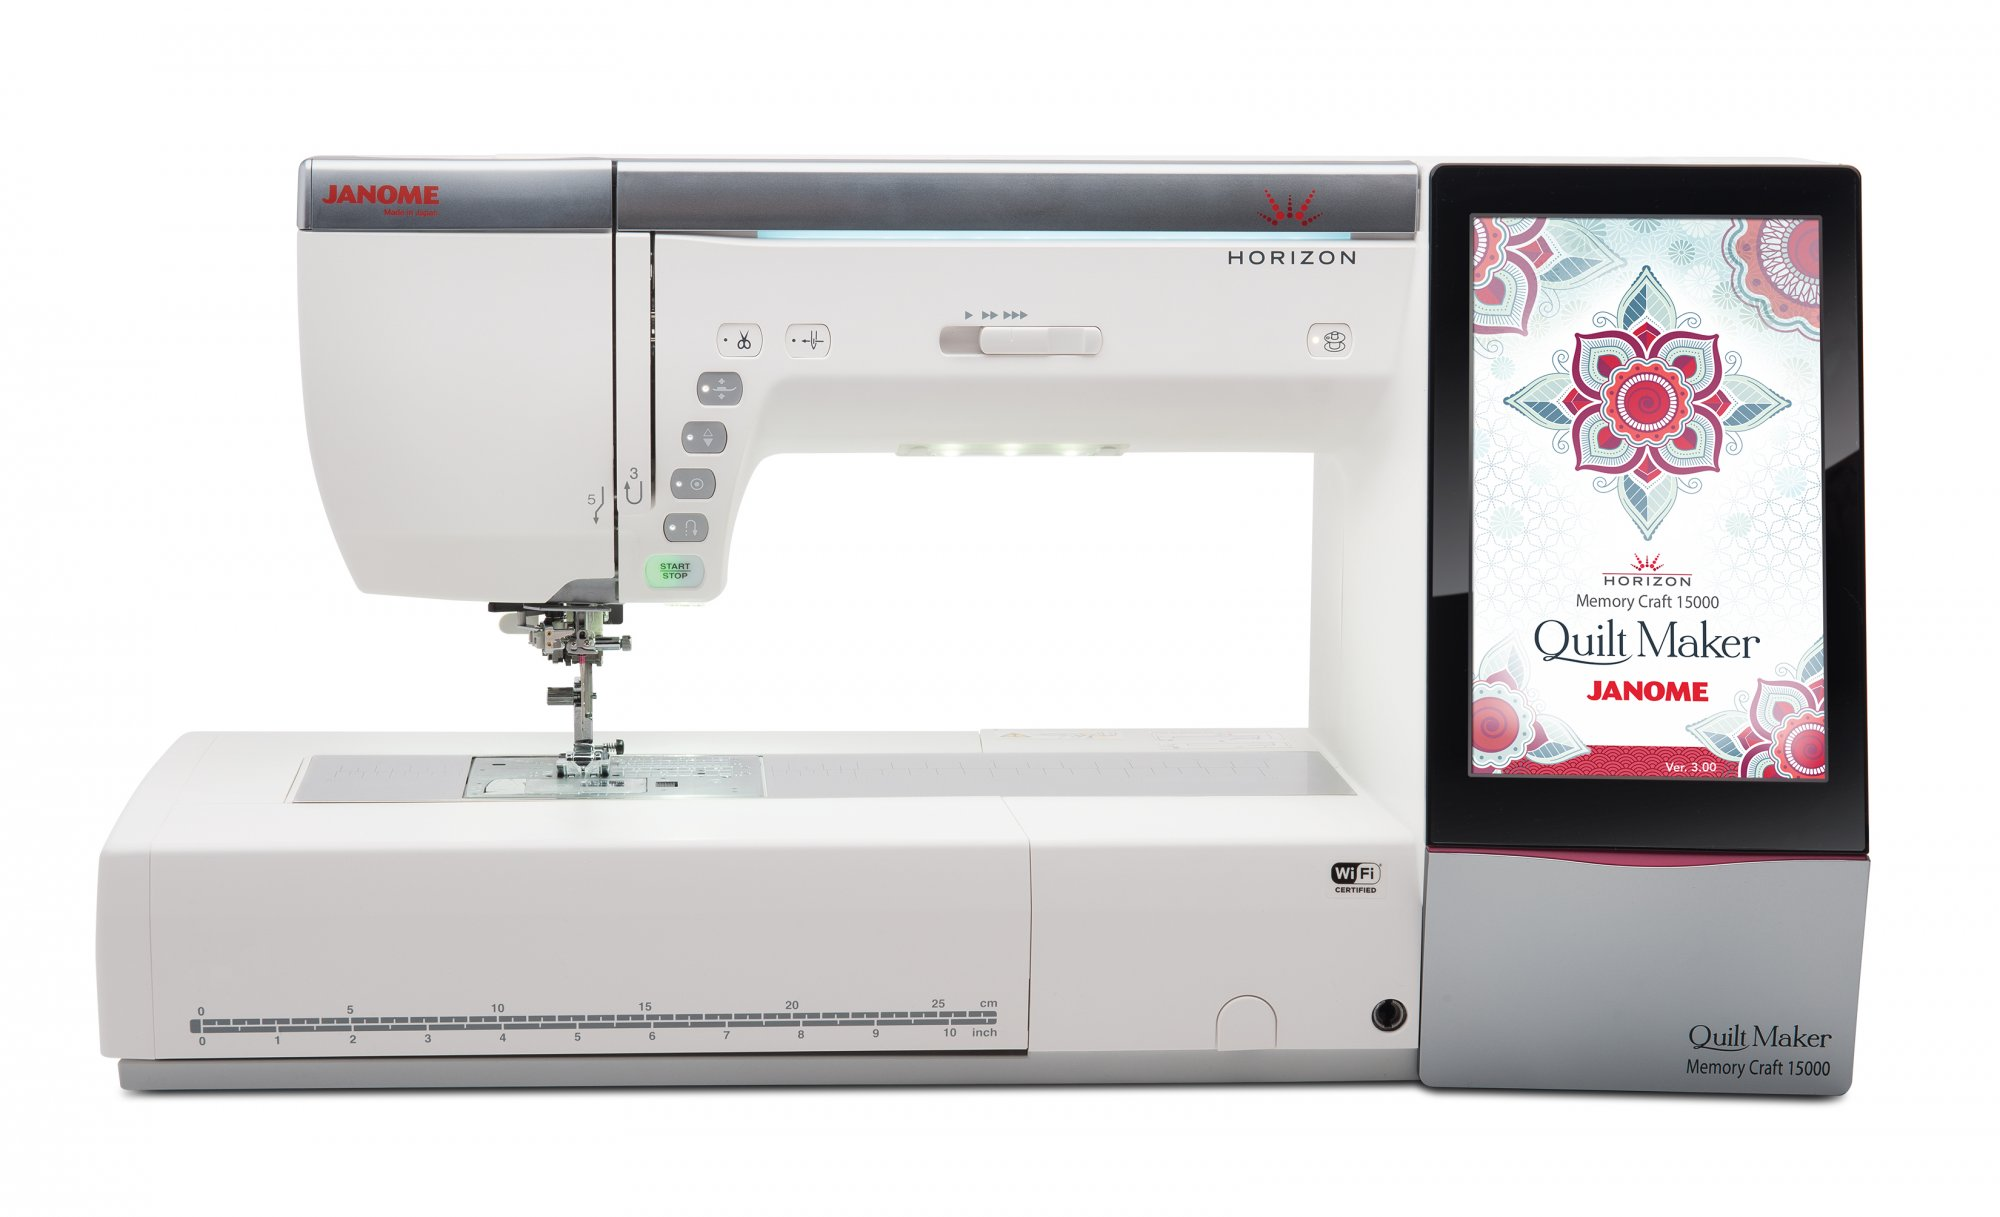 NEW! Janome Horizon Quilt Maker Memory Craft 15000 | Quilting-Sewing-Embroidery